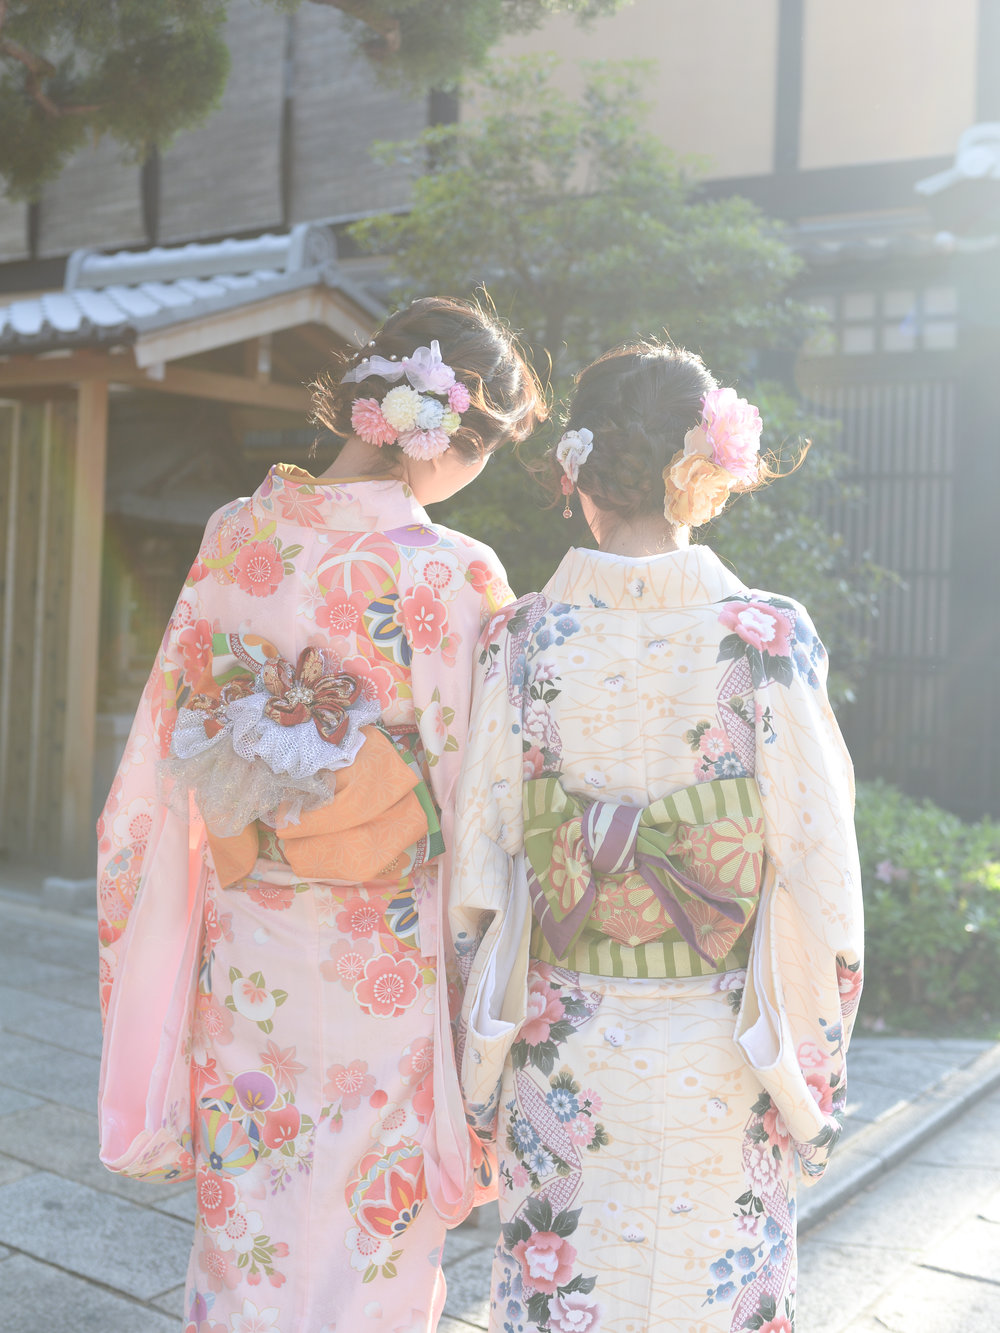 kyoto girls-3.jpg